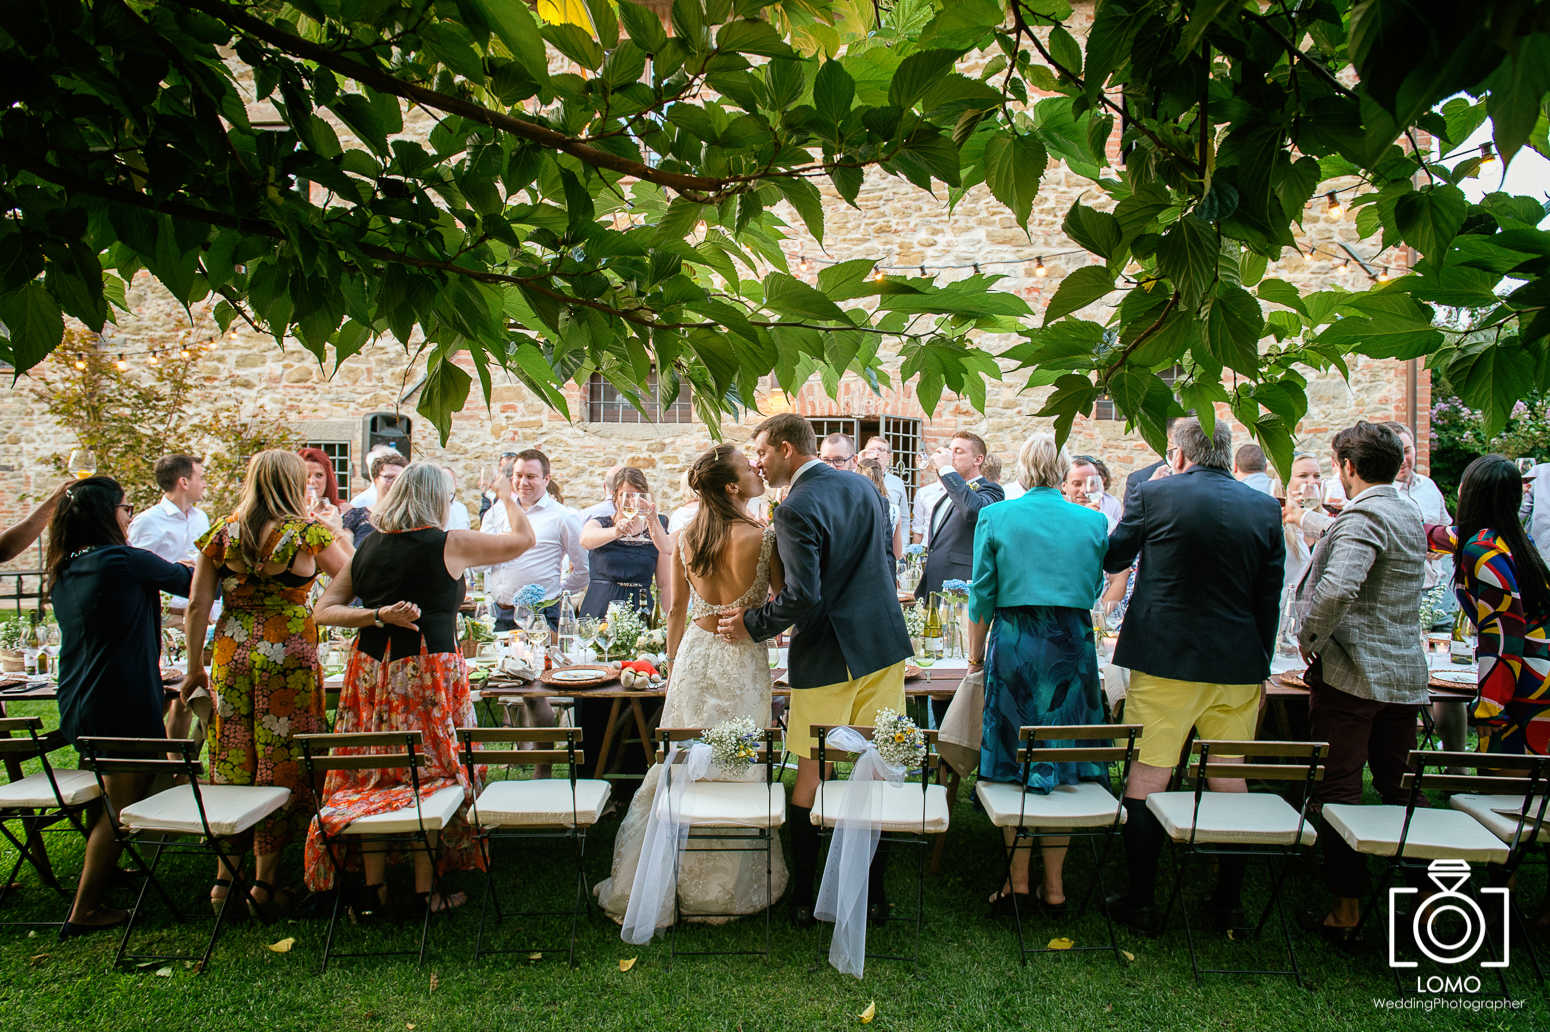 Susie & Rich - Country chic wedding in Umbria